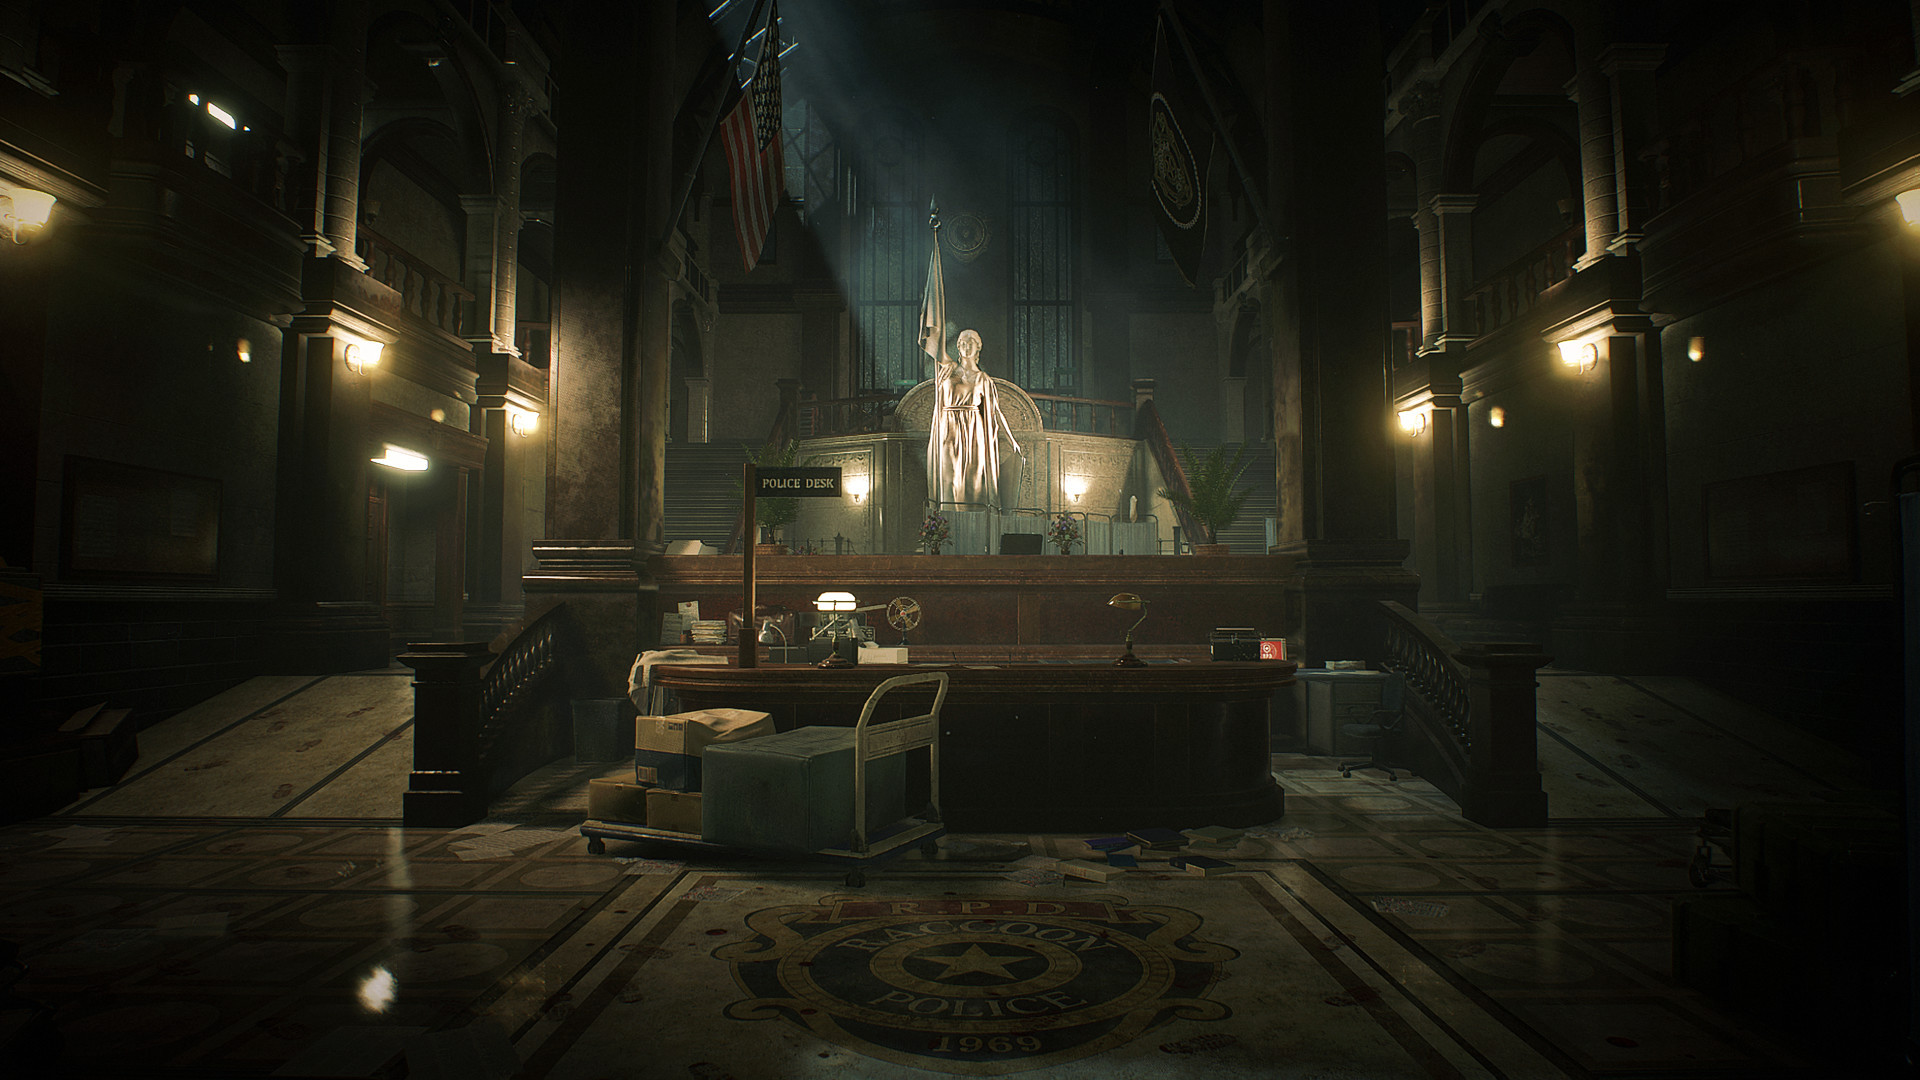 New Resident Evil film merges first two games, inspired by John Carpenter